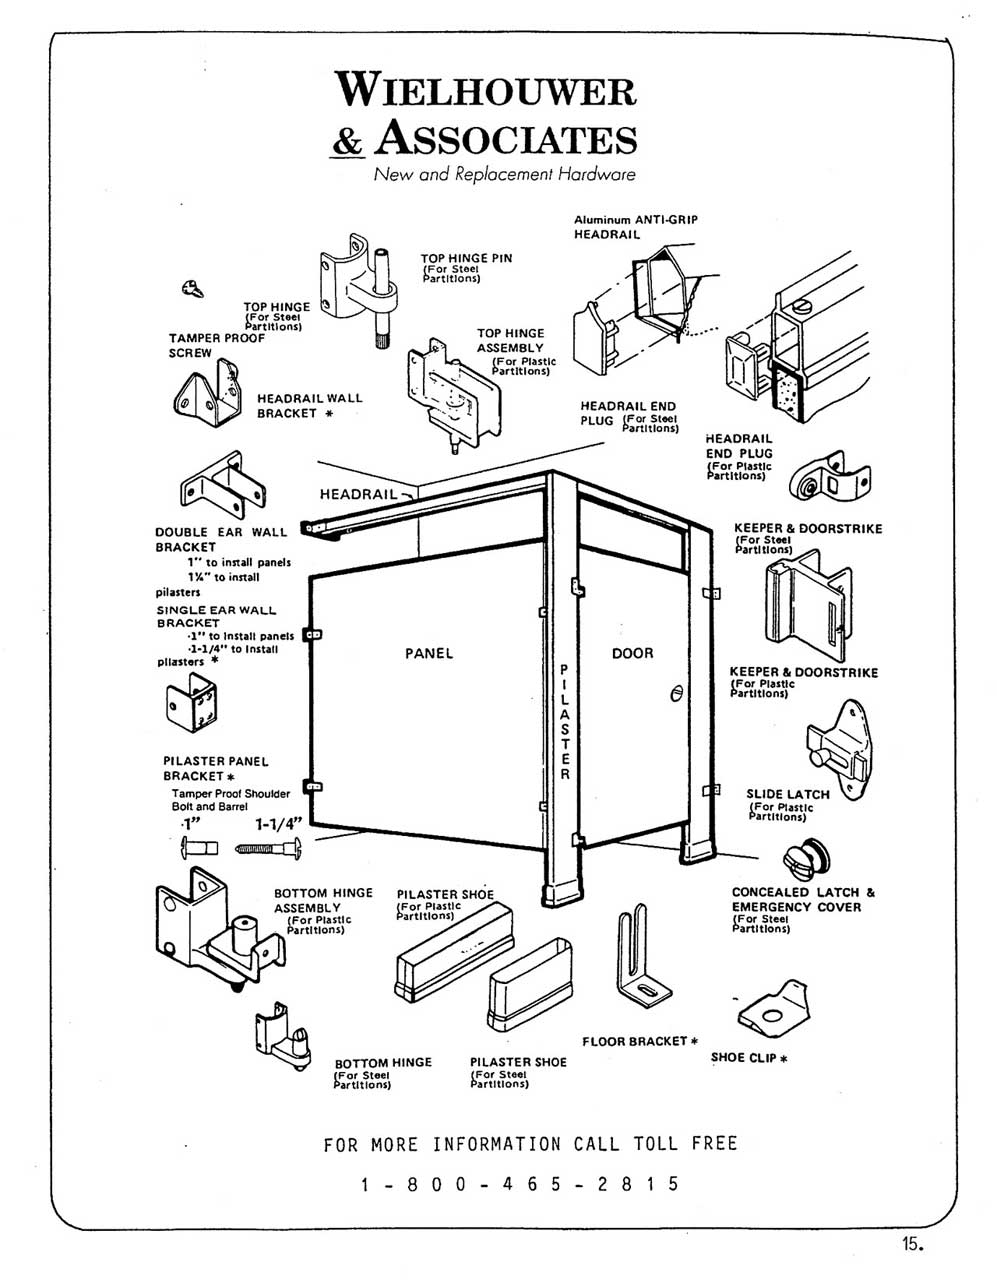 toilet partitions parts identification diagram toilet